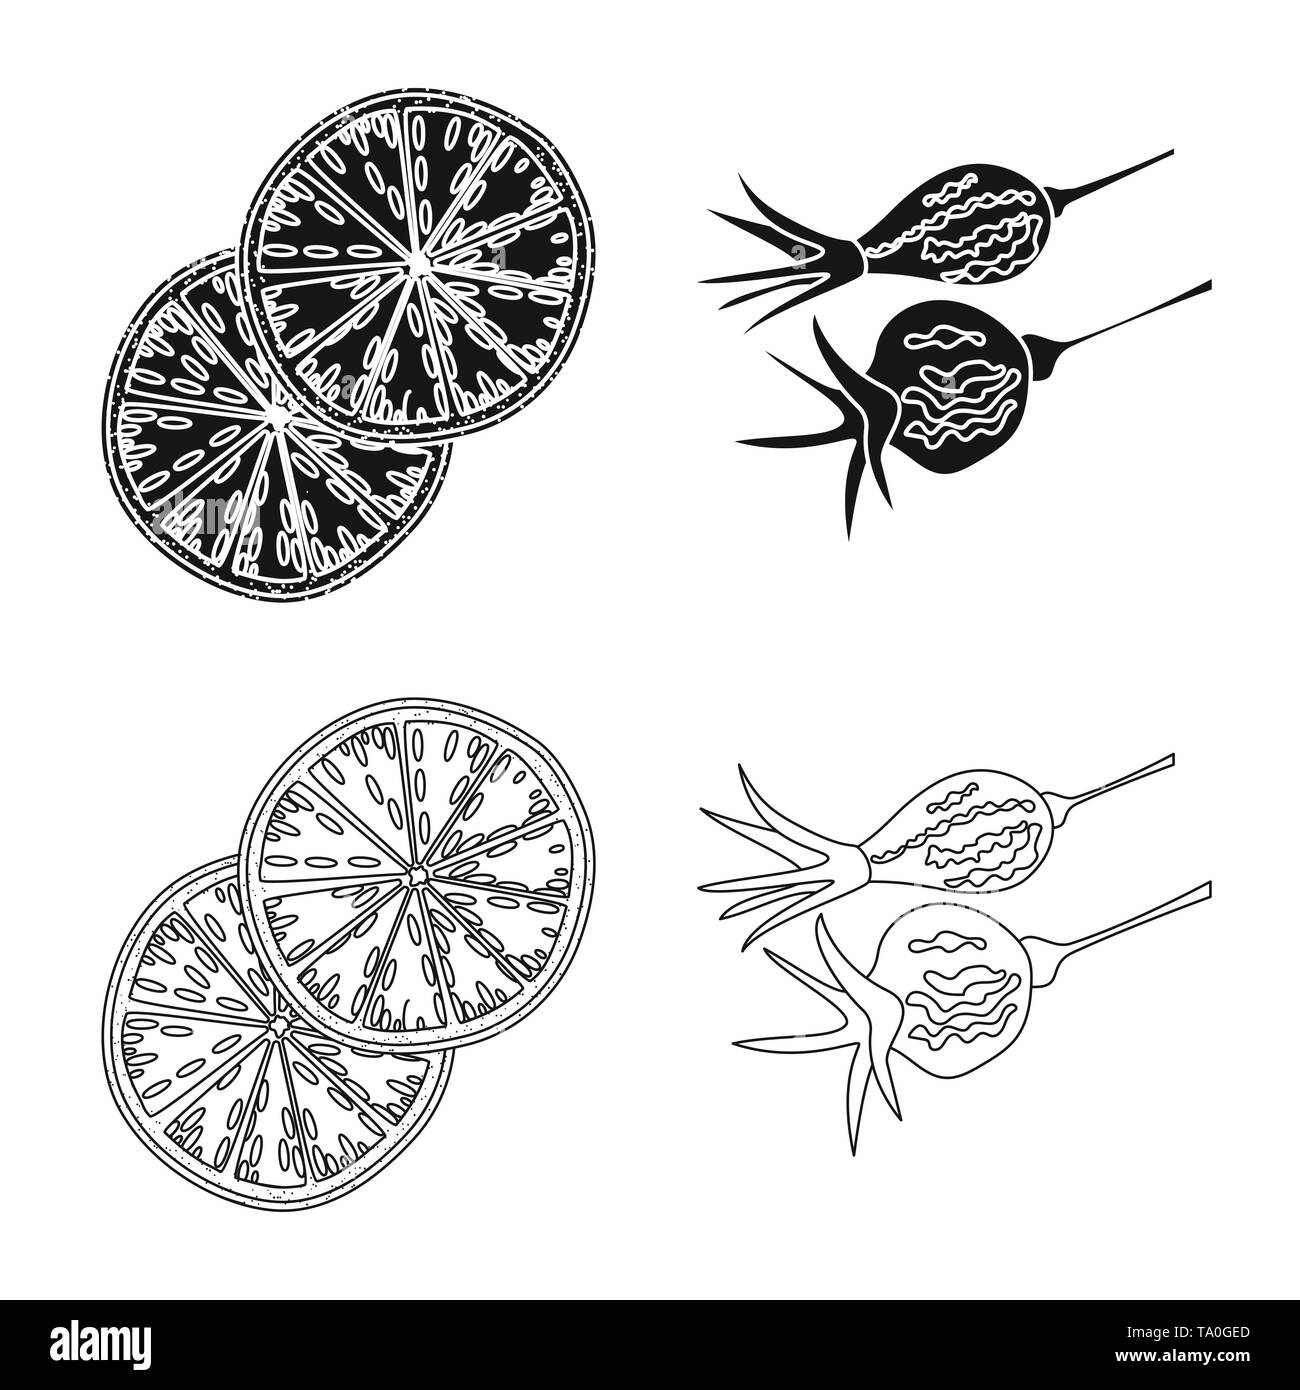 Vector illustration of food  and raw  icon. Collection of food  and nature   stock symbol for web. - Stock Image